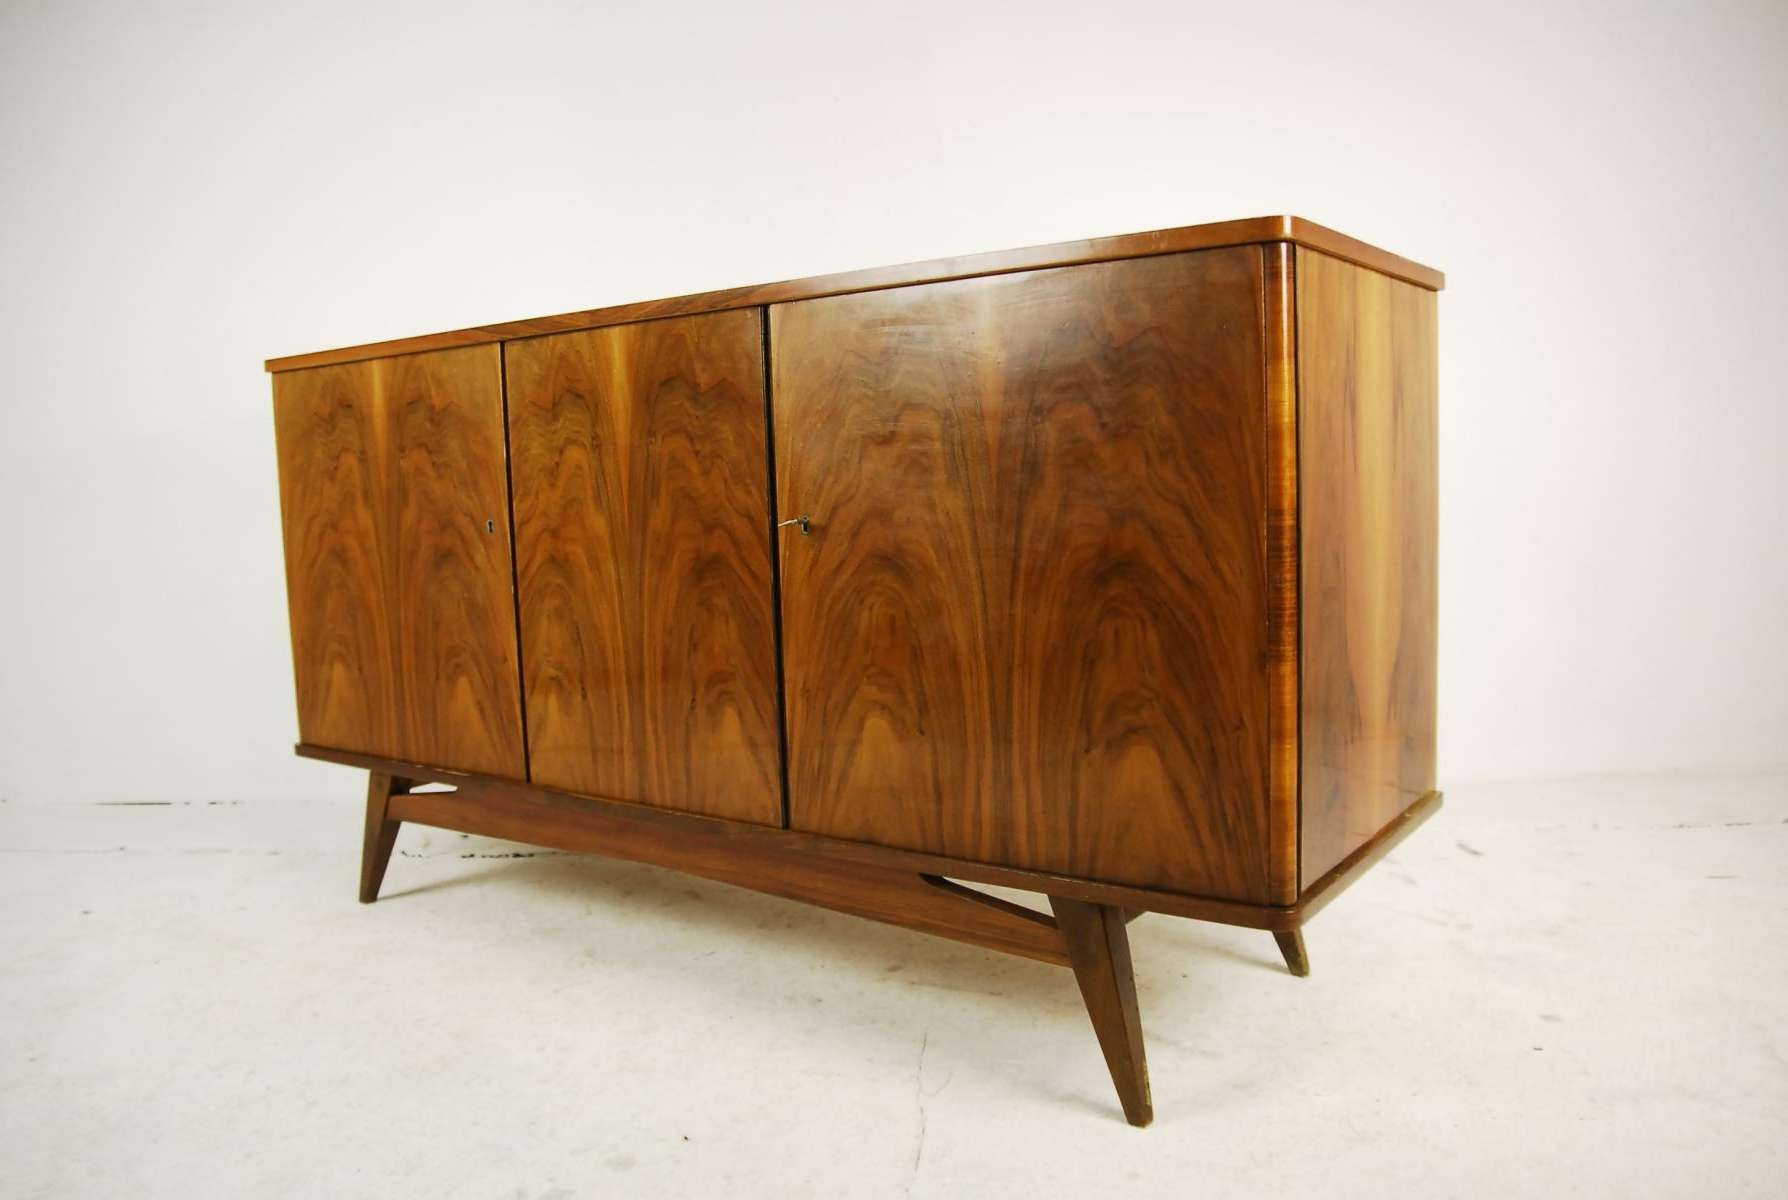 Beech Sideboard From Lodz Furniture Factory, 1960S For Sale At Pamono Within Beech Sideboards (View 3 of 20)